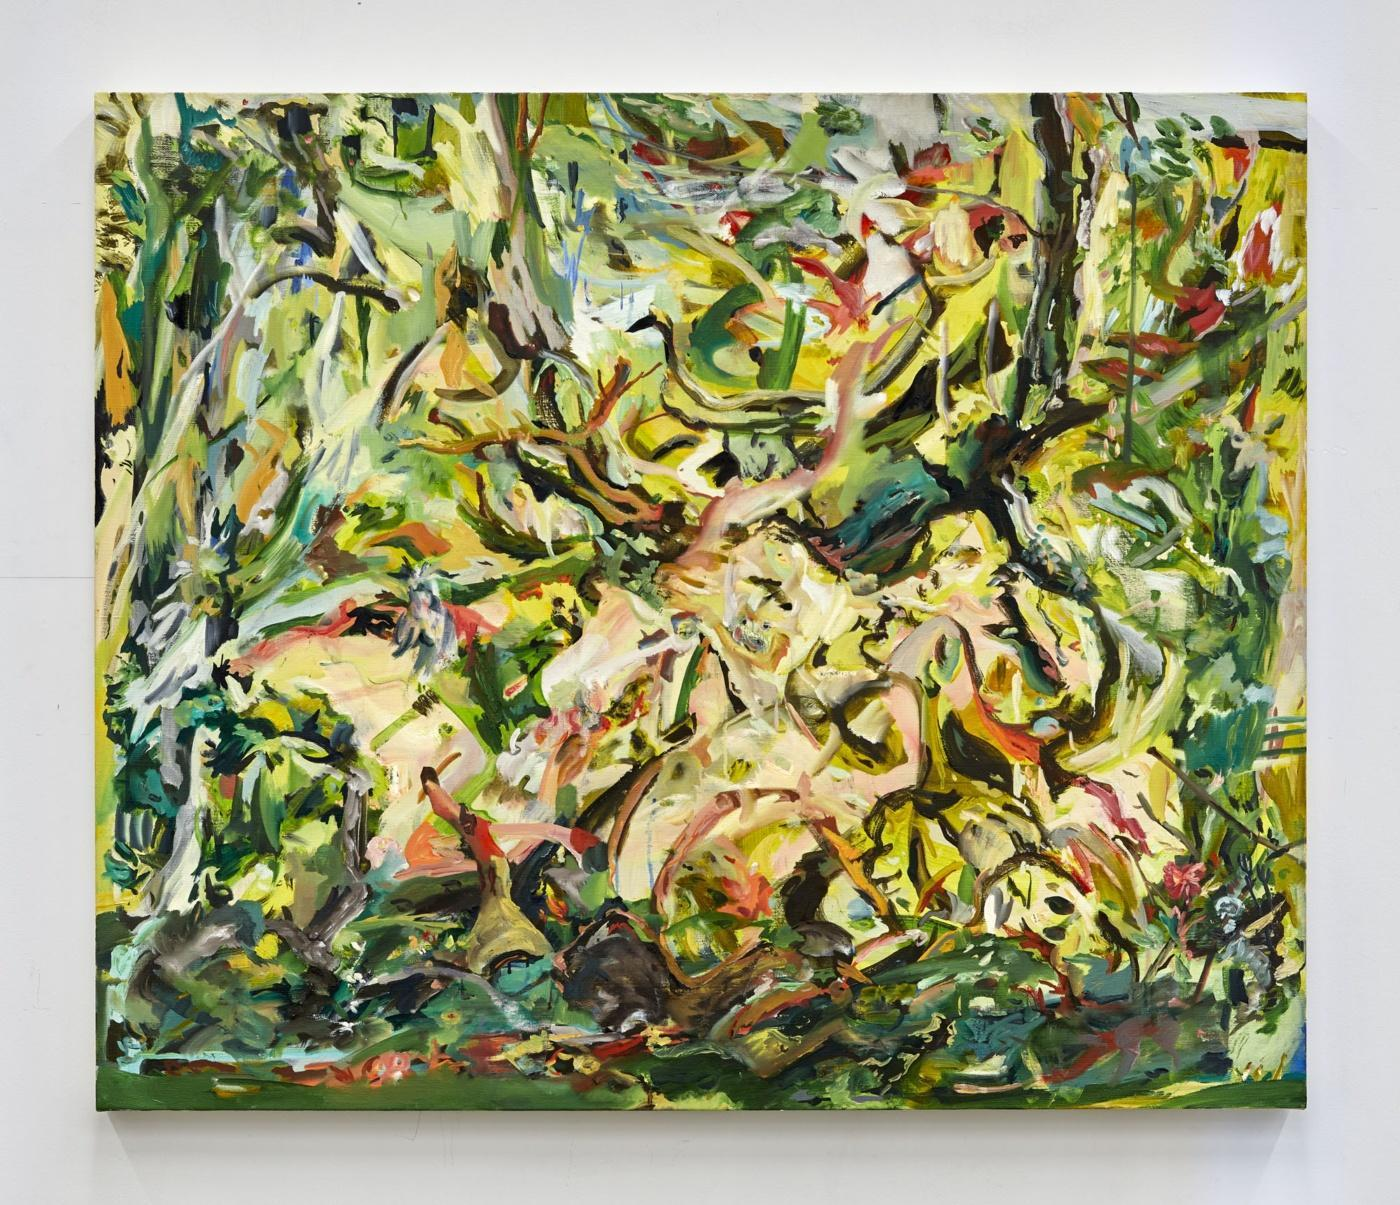 Cecily Brown,/Two Fools in Love/, 2020, oil on linen, 78.7 × 94 cm